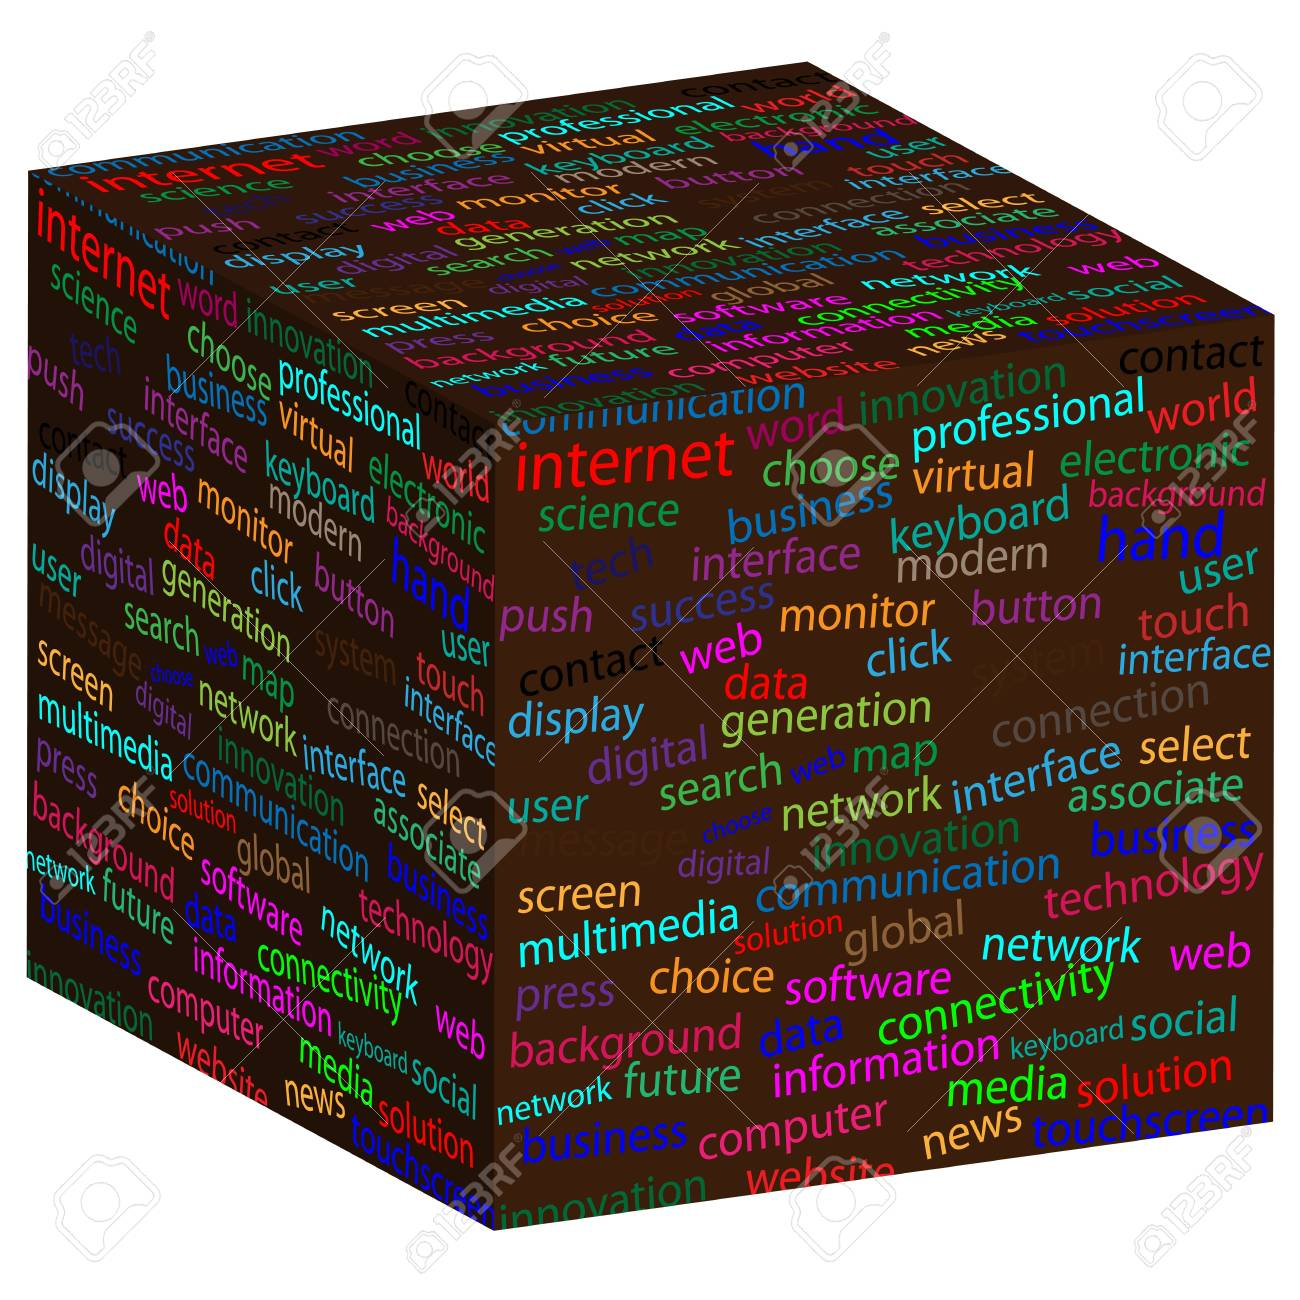 Cube with different words on the faces of designers for various necessities Stock Vector - 19622719